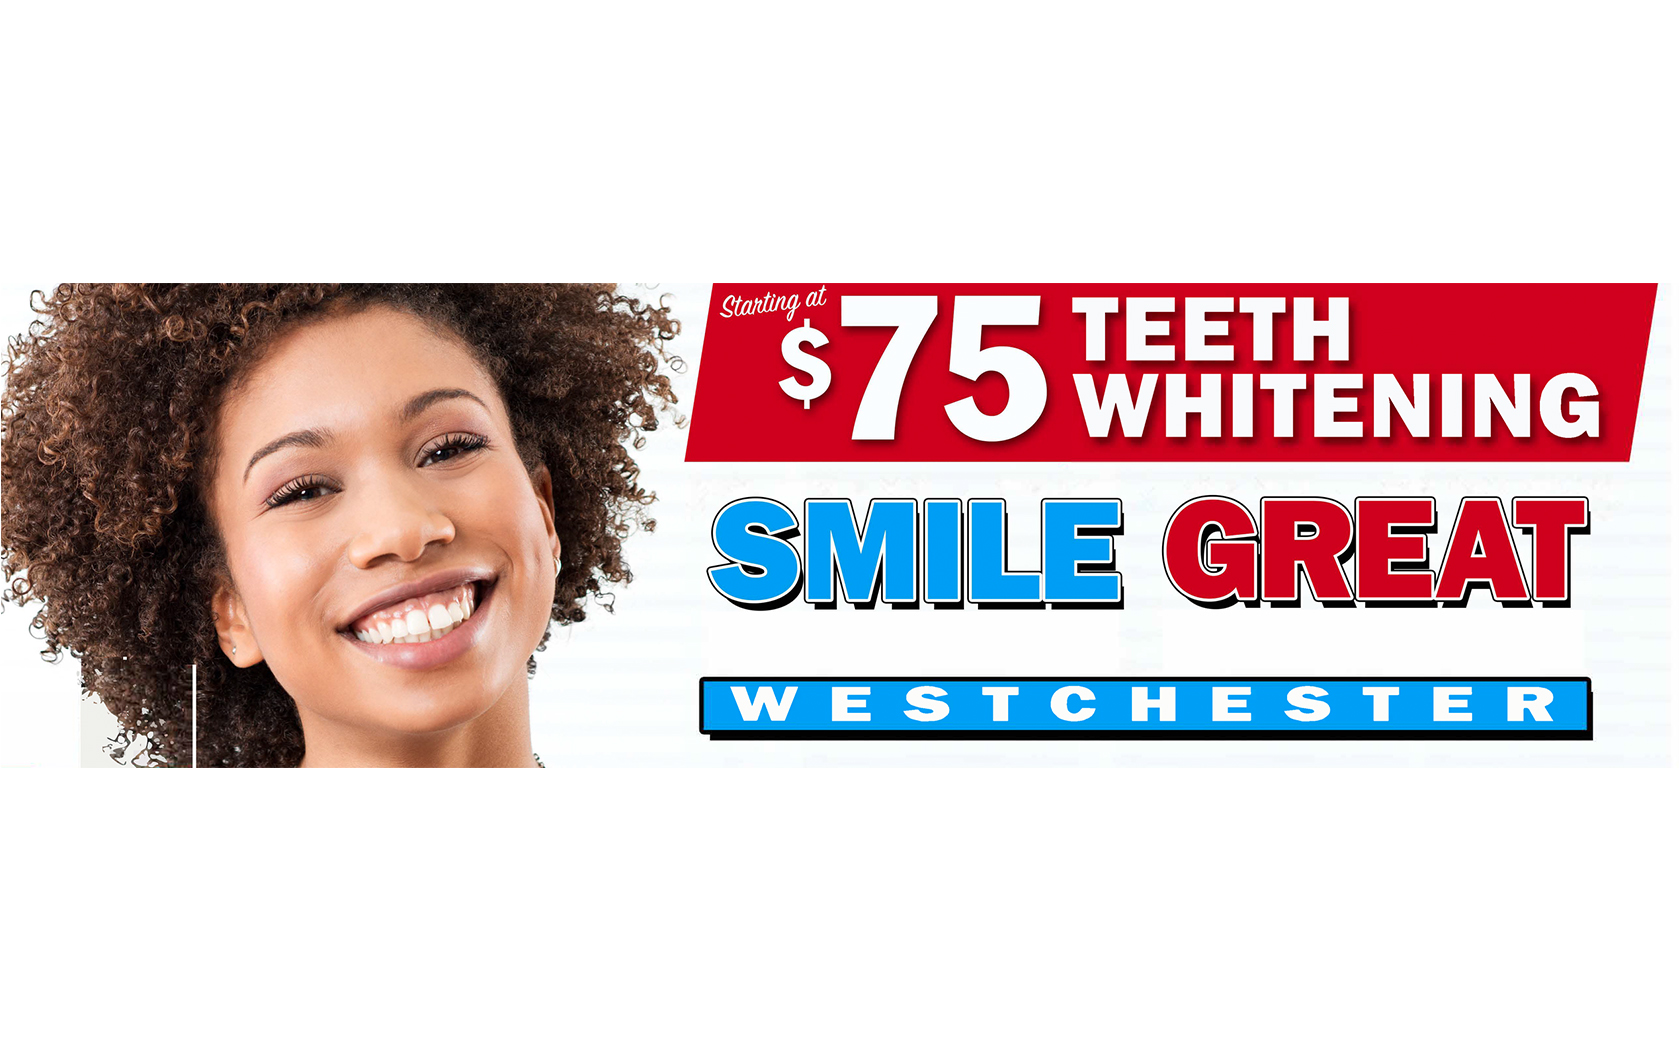 Smile Great Ad.jpg